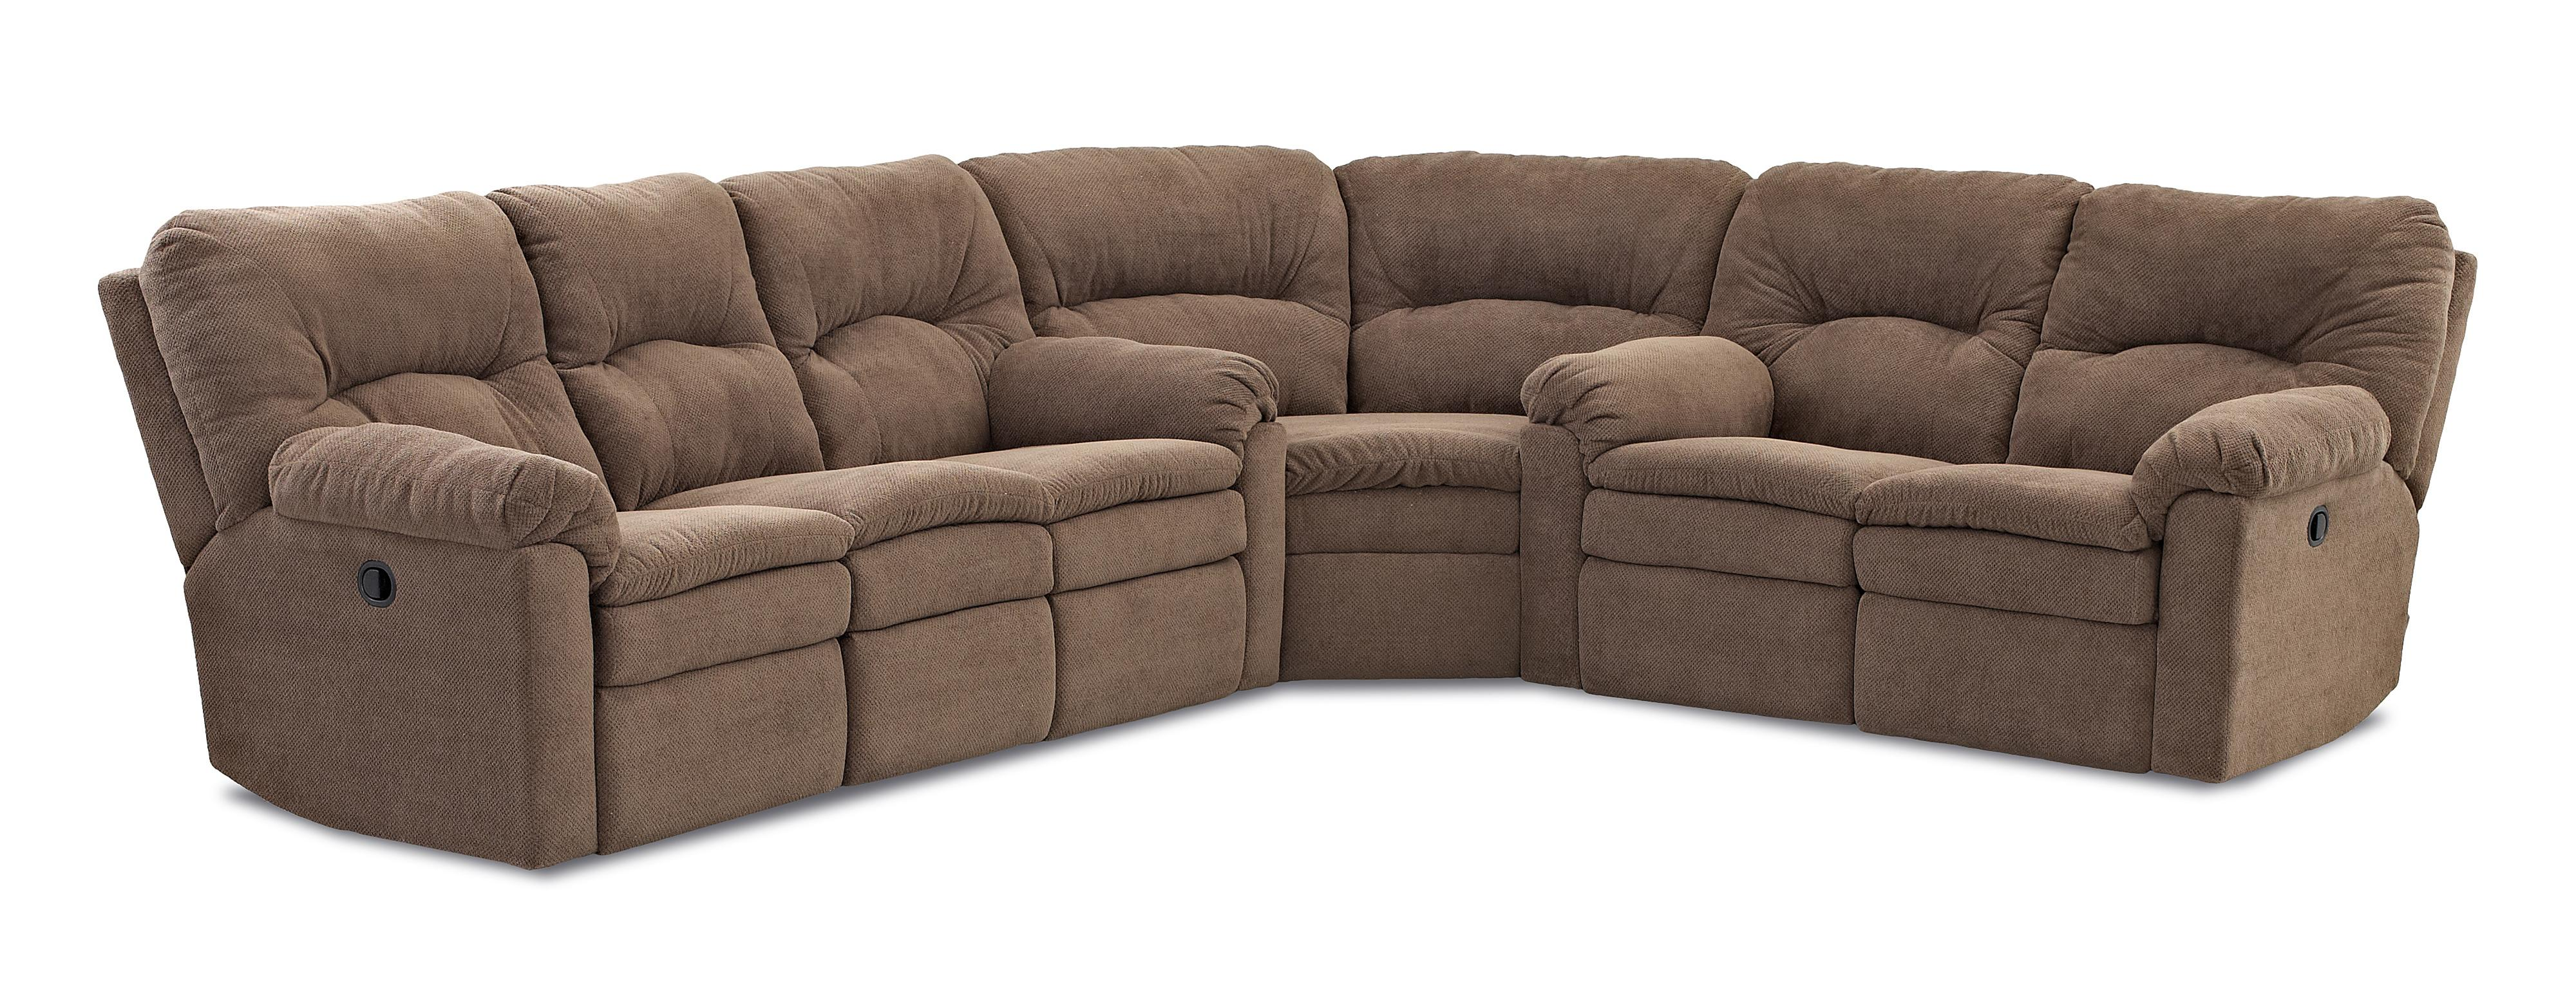 Klaussner Bennington Casual 3 Piece Power Reclining Sectional Sof - Item Number: 40703 PWRS+90SEW+PWRLS